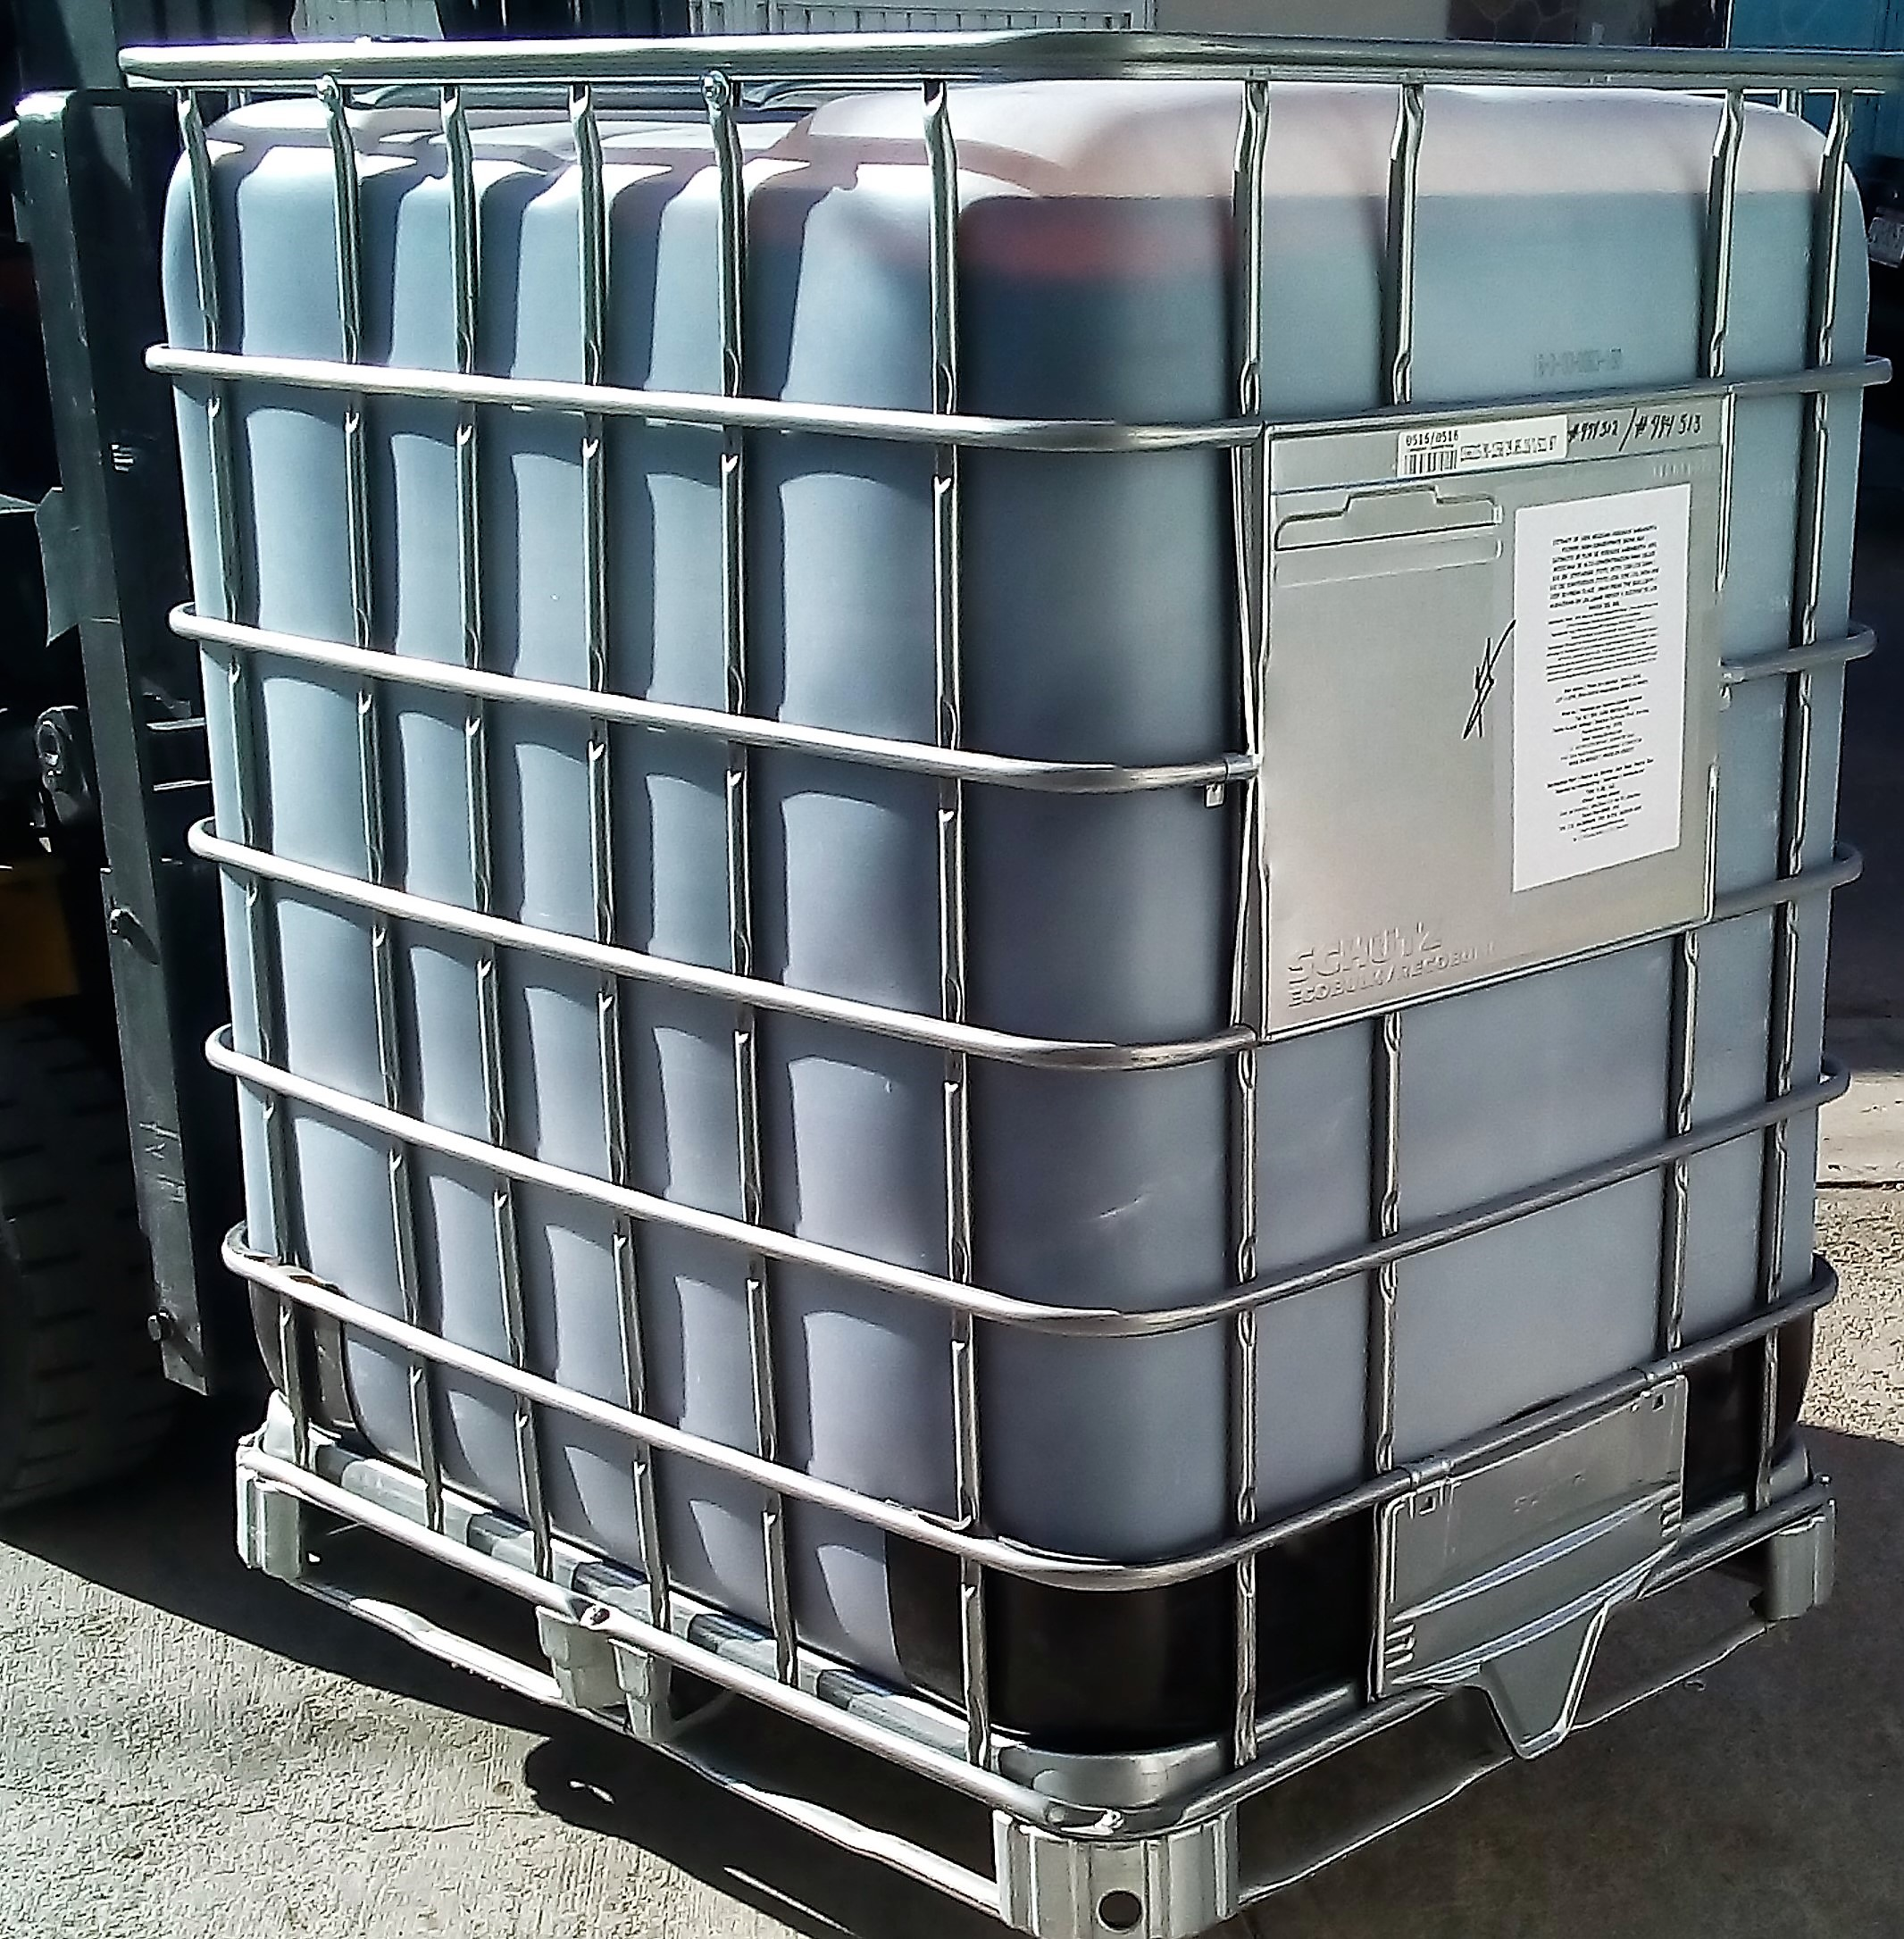 IBC Container (B2B / Export Size Presentation) of our unique Hibiscus Flower Extract for Beverages